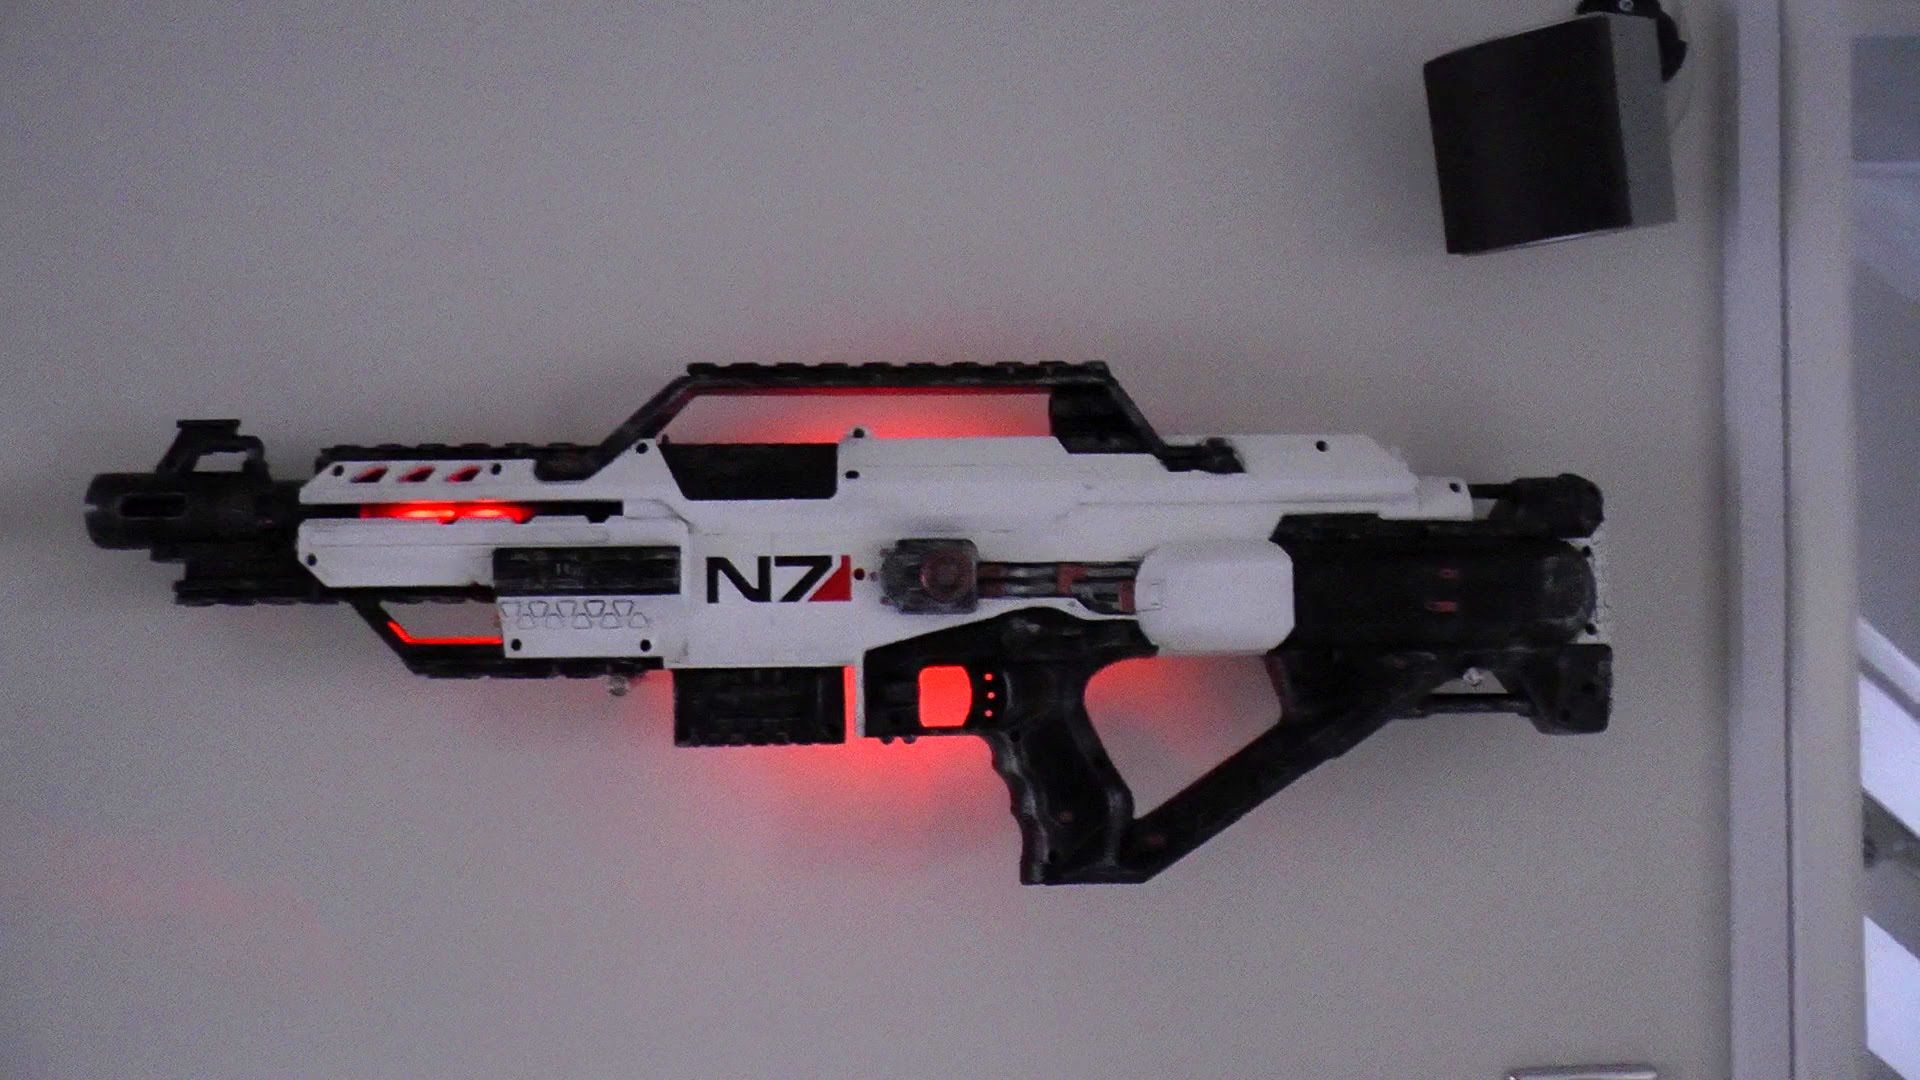 So my friend makes working Destiny/MassEffect/Warhammer replica weapons  from Nerf guns for a living.